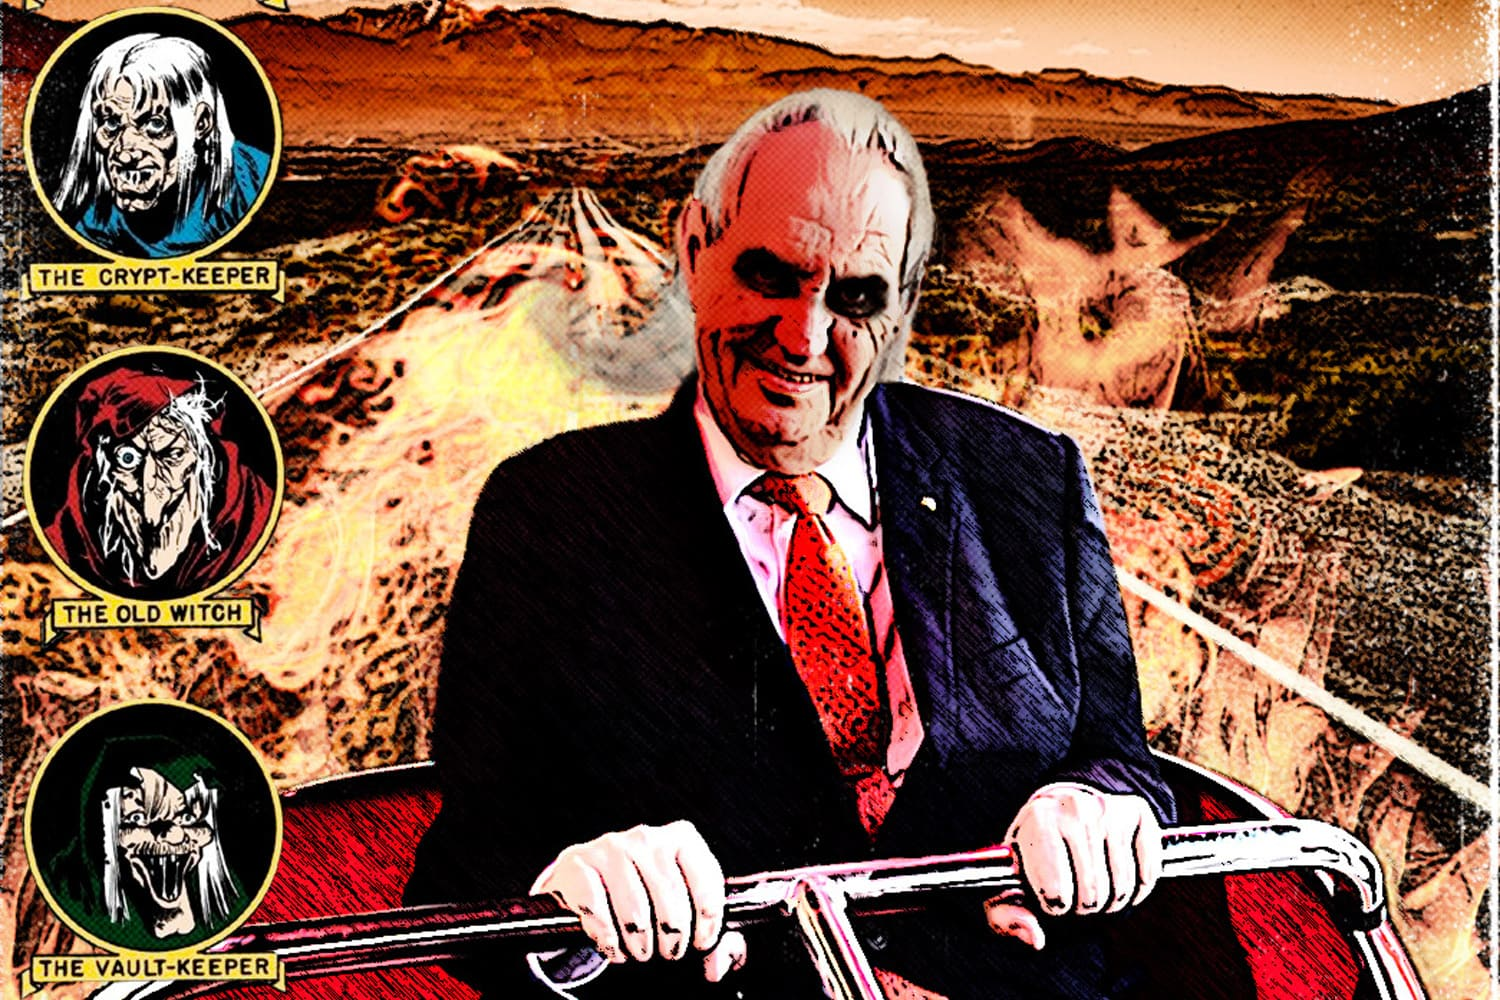 Photo of Czech President Miloš Zeman at Matějská pouť funfair goes viral